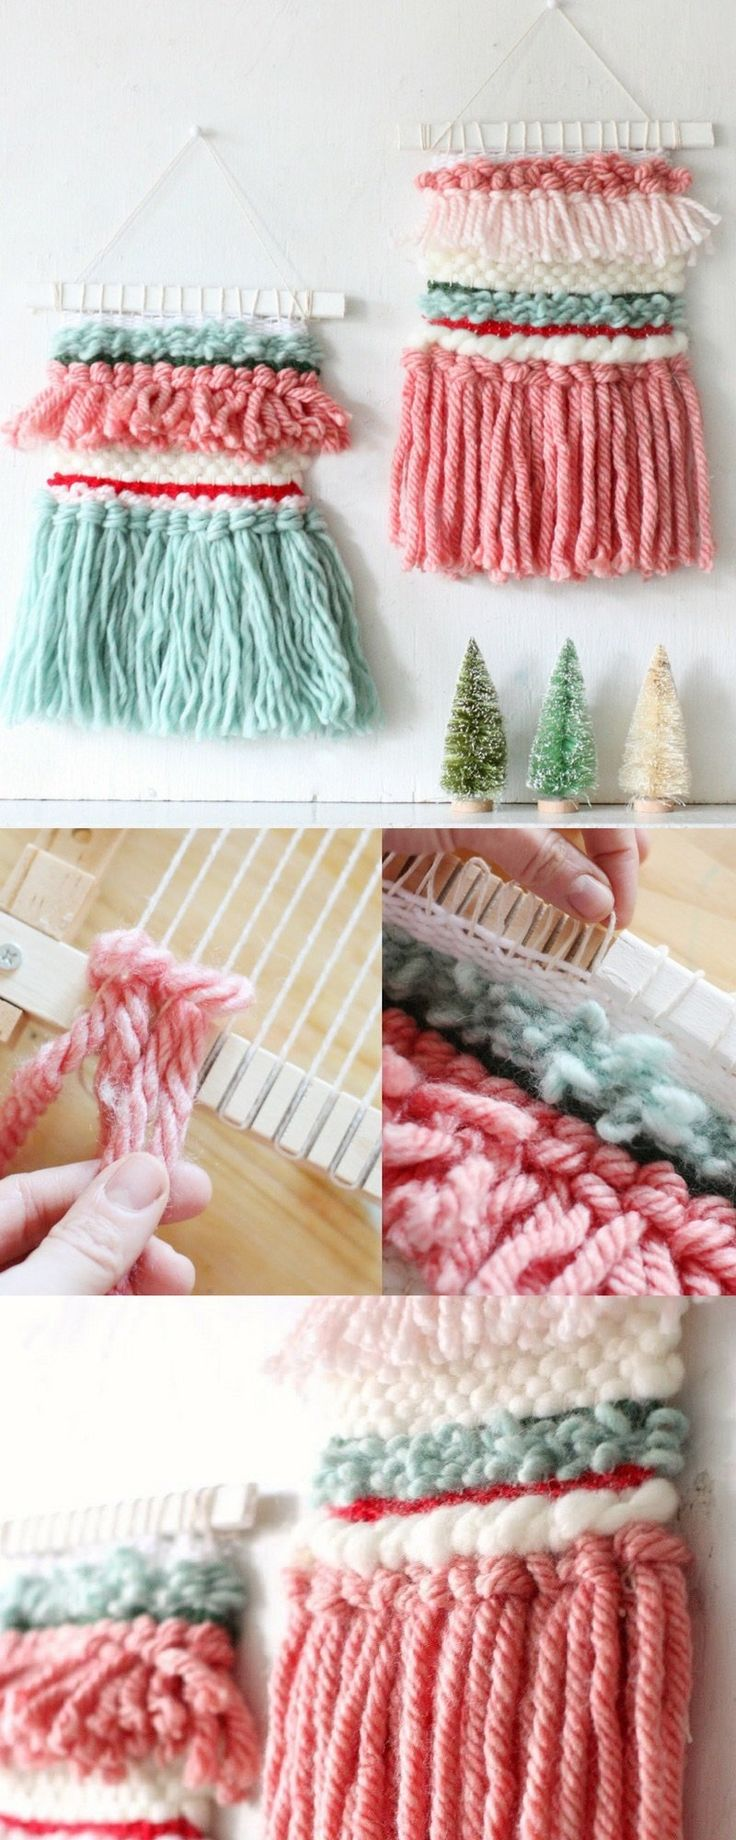 DIY Woven Holiday Wall Hanging 1186 best